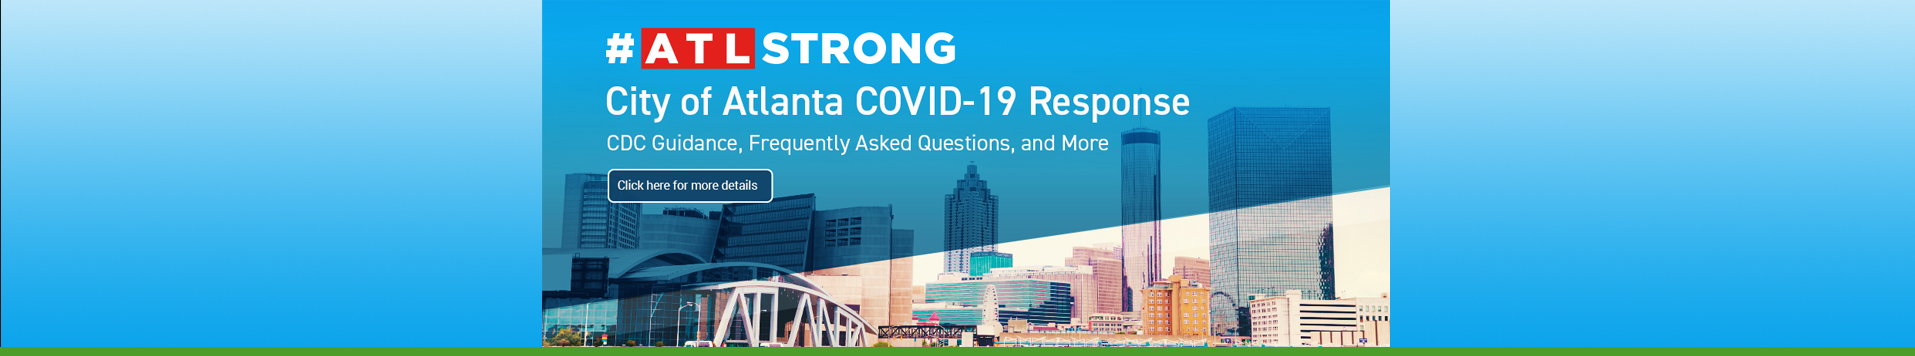 "Mobile Alerts The City of Atlanta has activated a text message service for COVID-19 updates. Sign up by texting ""ATLCOVID19"" to 888777. This is a one-way communication platform. Replies will not be received. Normal data fees may apply. Check with your provider for details on additional costs."